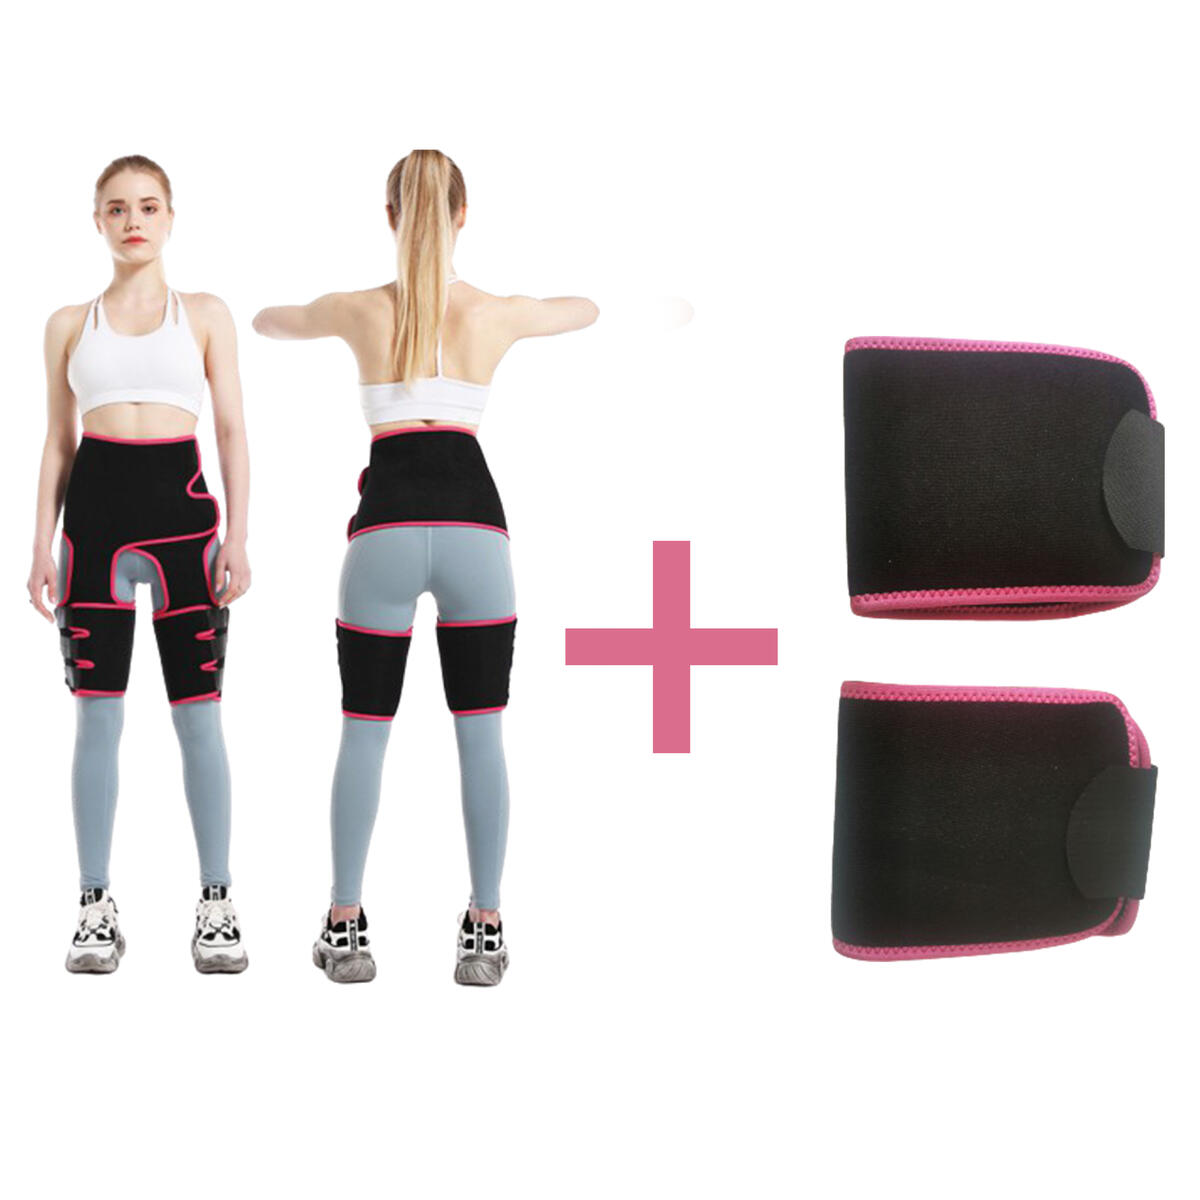 3-in-1 Thigh Trimmer-Slimming Waist Trainer and 2 Elbow Pads-Sauna Adjustable Slimming Body Shaper Belt-Butt Lifter Waist Trainer Shaping Slimming Support-Waist Band for Women Weight Loss